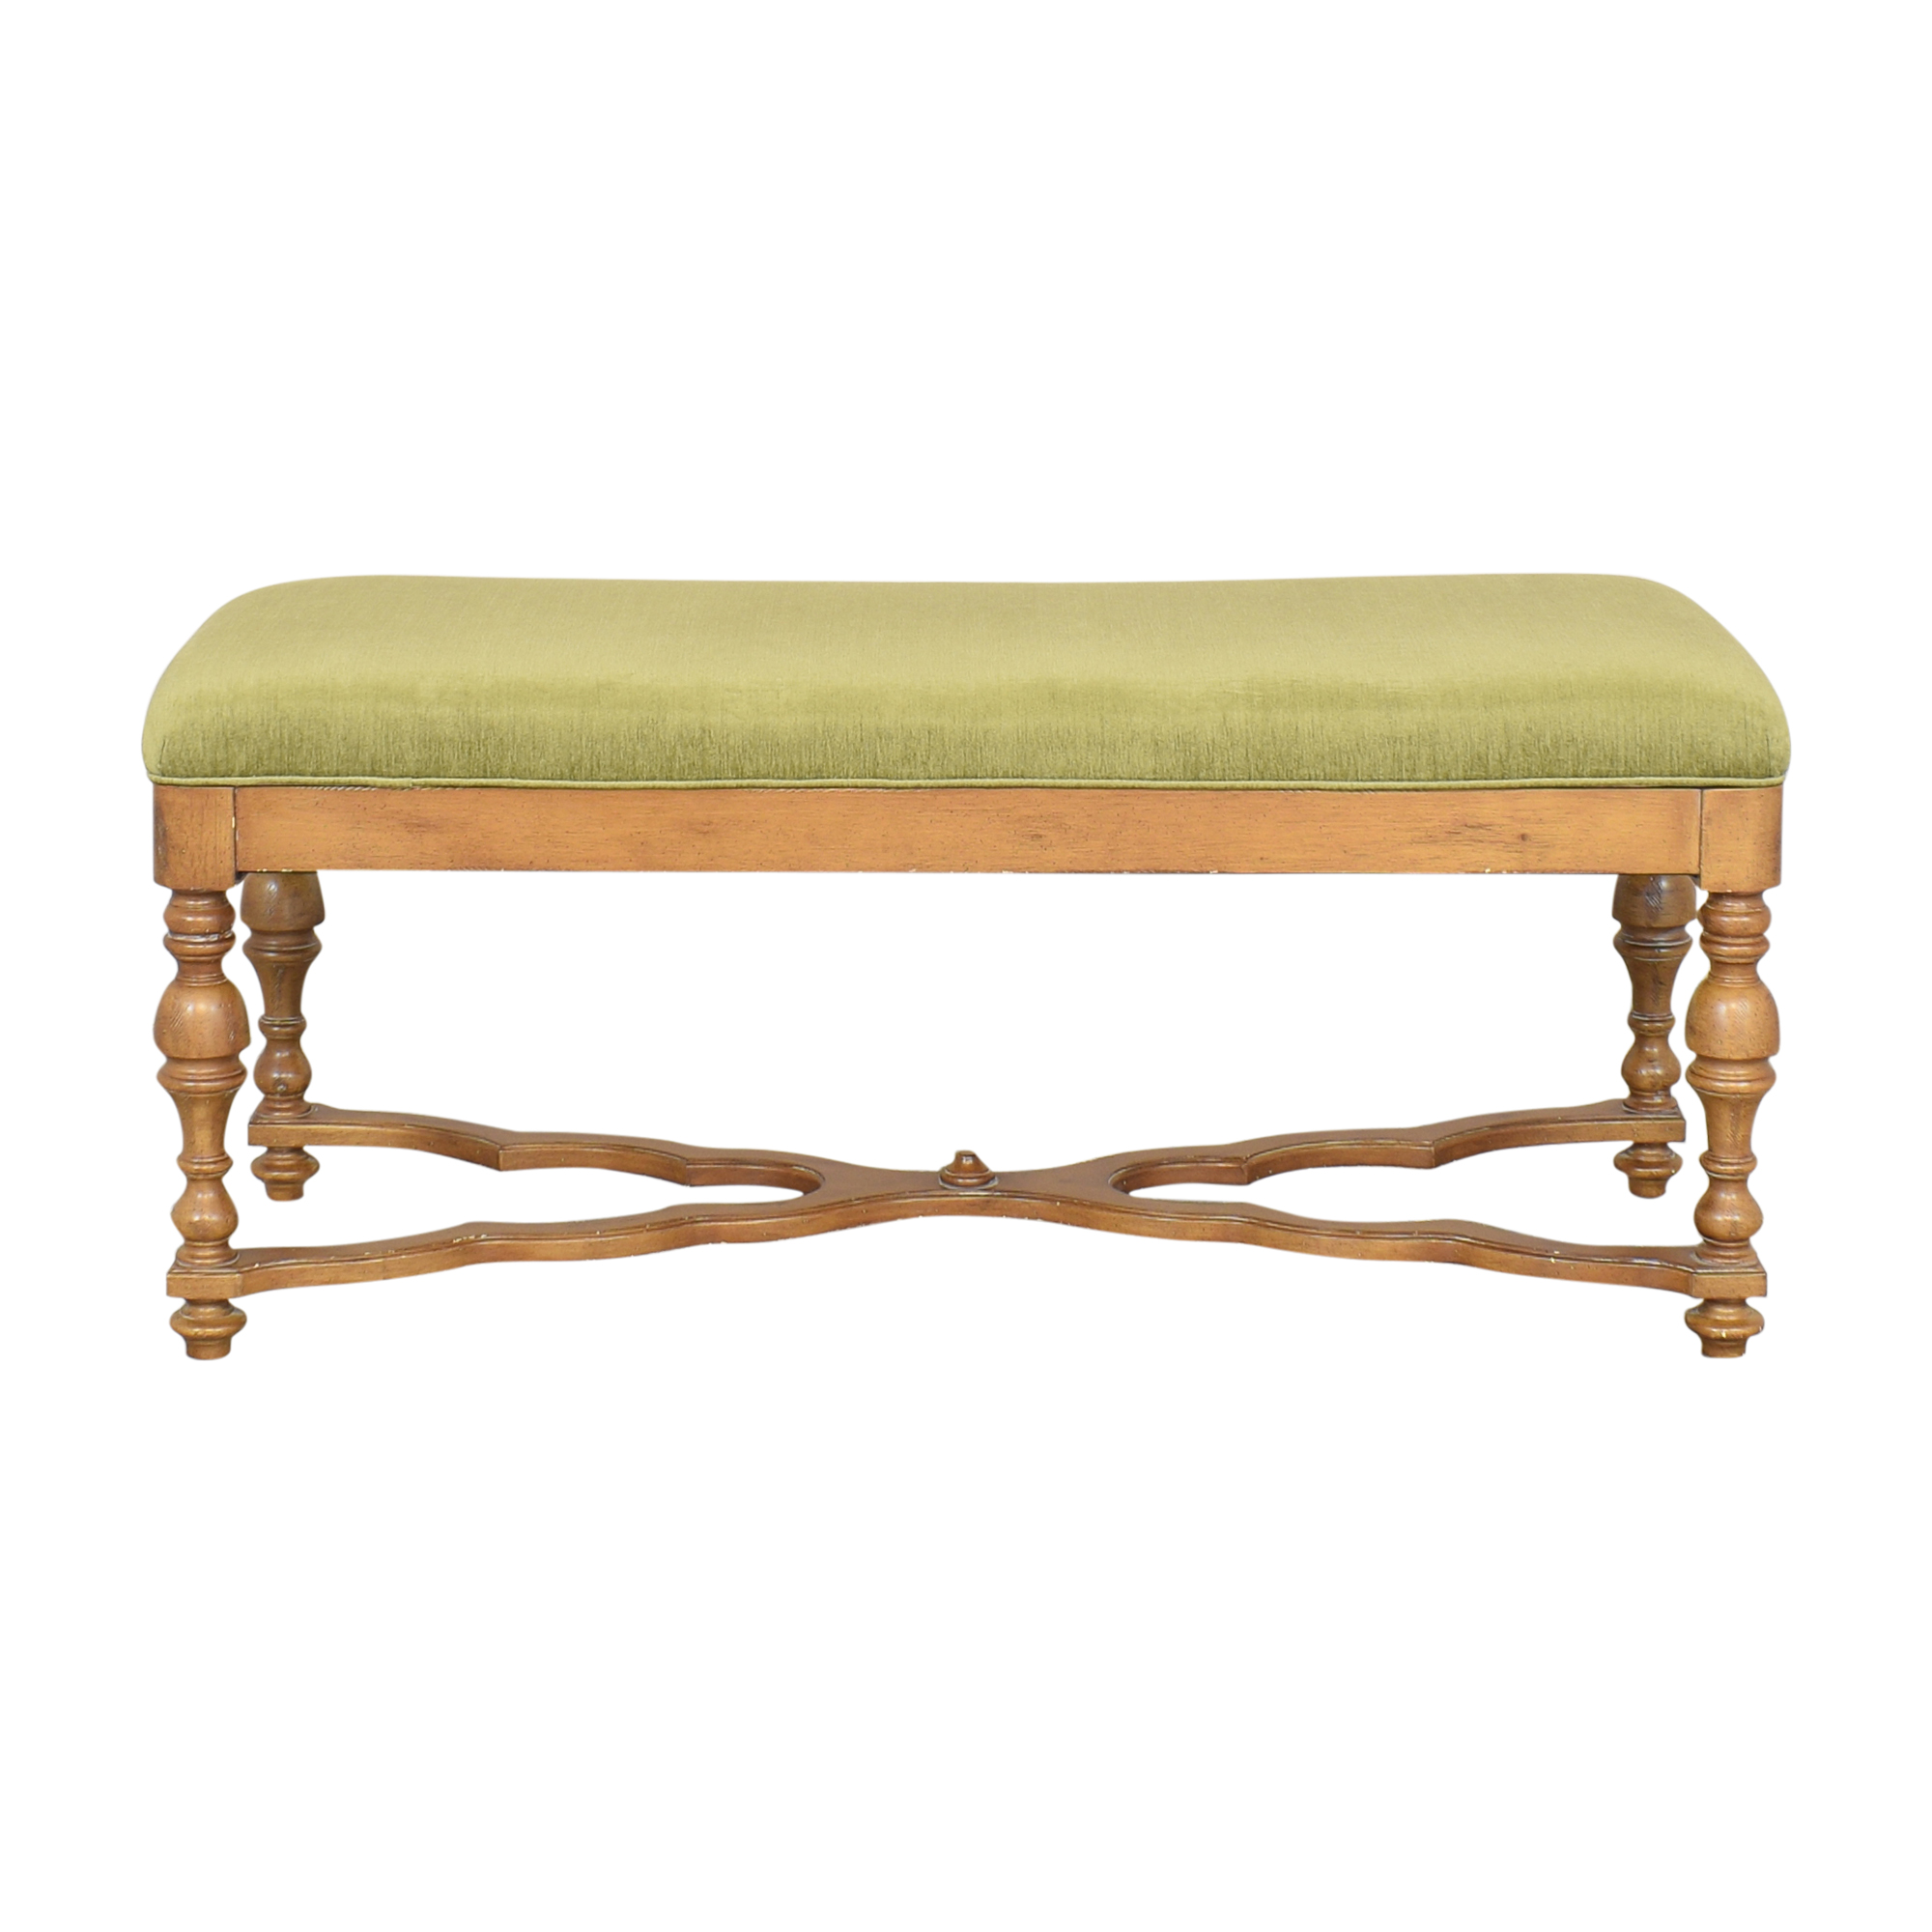 Custom Upholstered Bench green and light brown